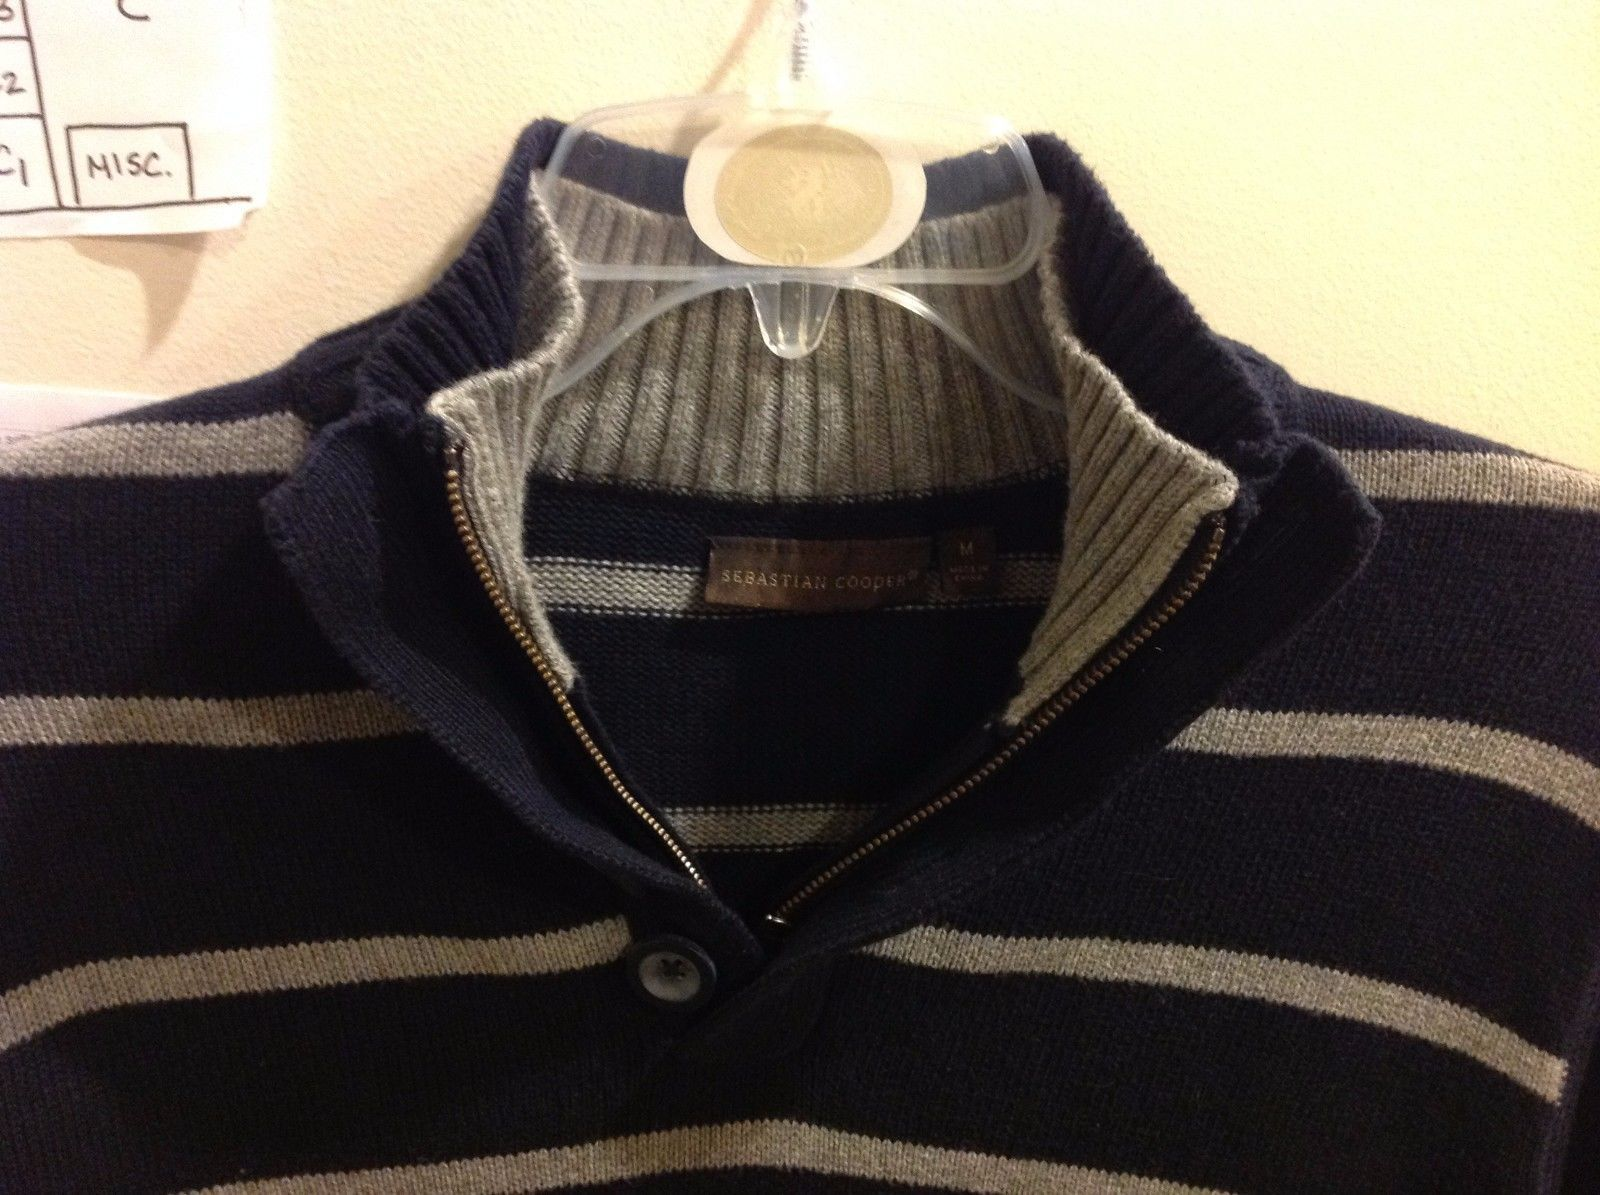 Mens Long Sleeve Navy Blue Sweater w Gray Stripes by Sebastian Cooper Sz M